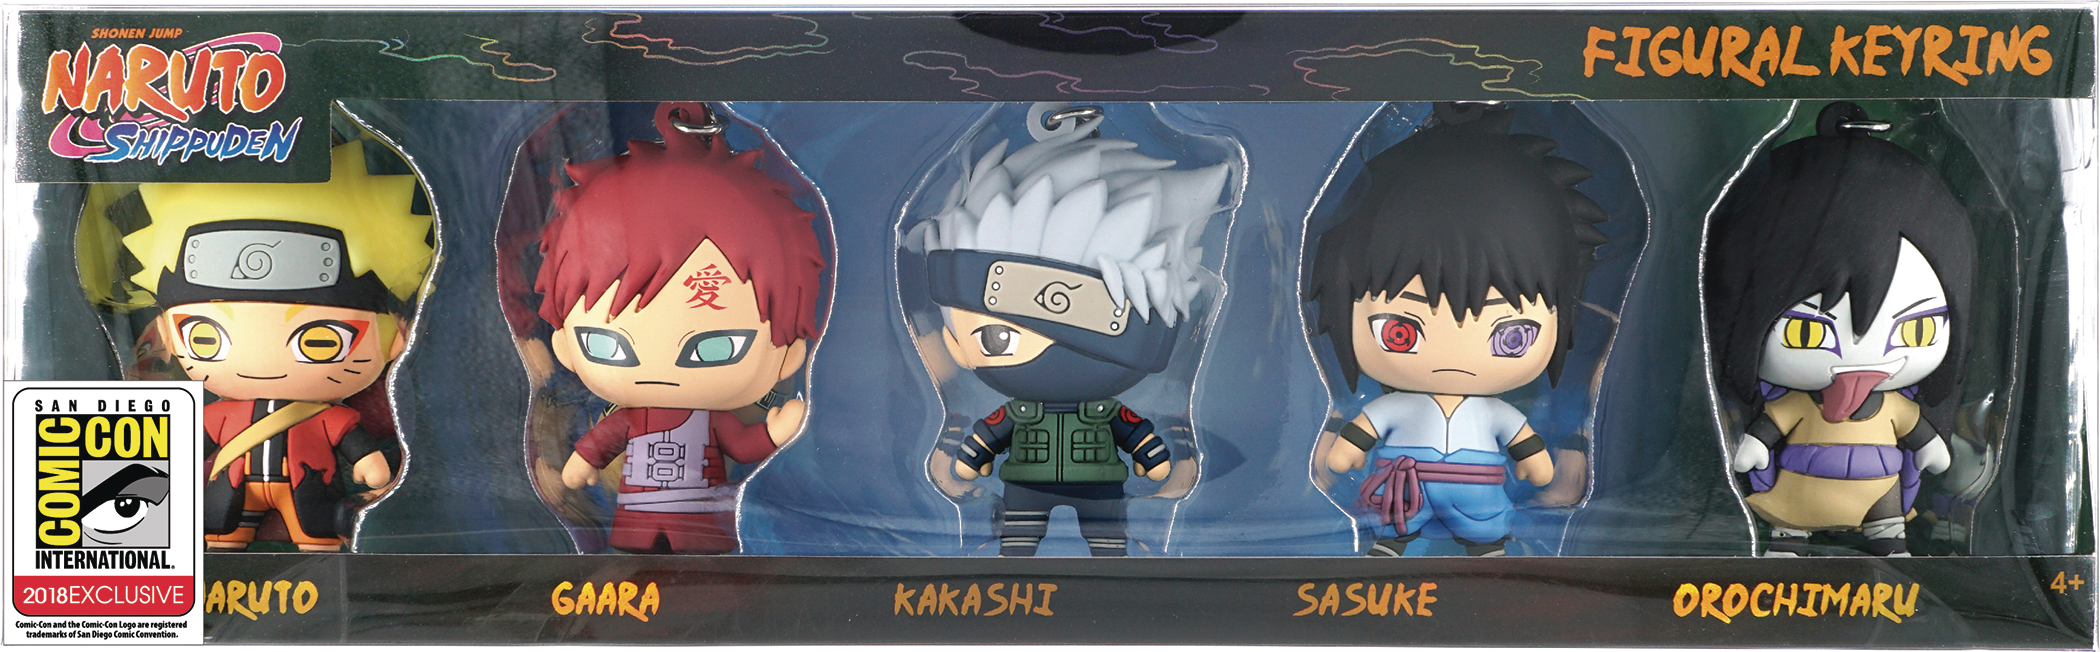 NARUTO 3D FOAM KEY RING CON EXCL 5PC SET